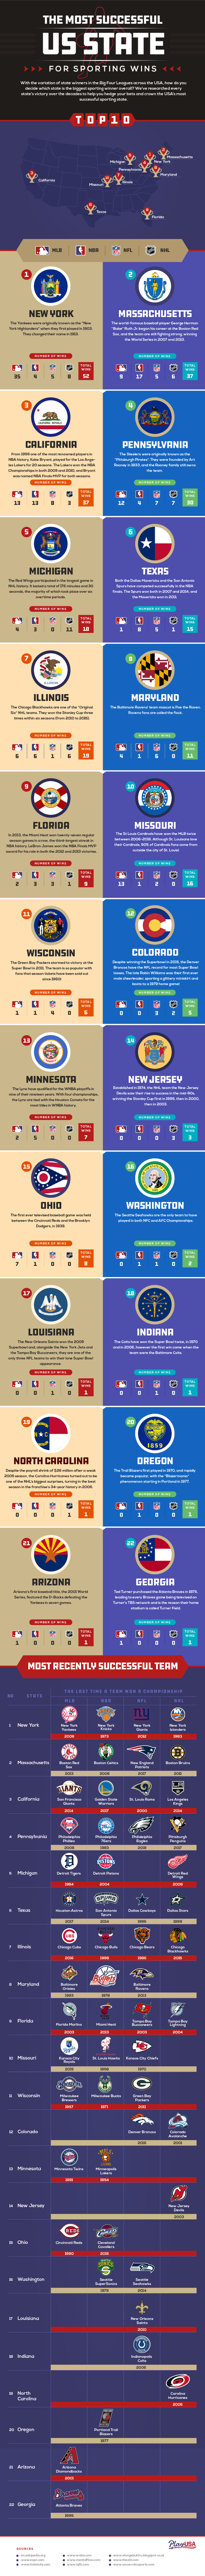 How to Woo a Designer infographic